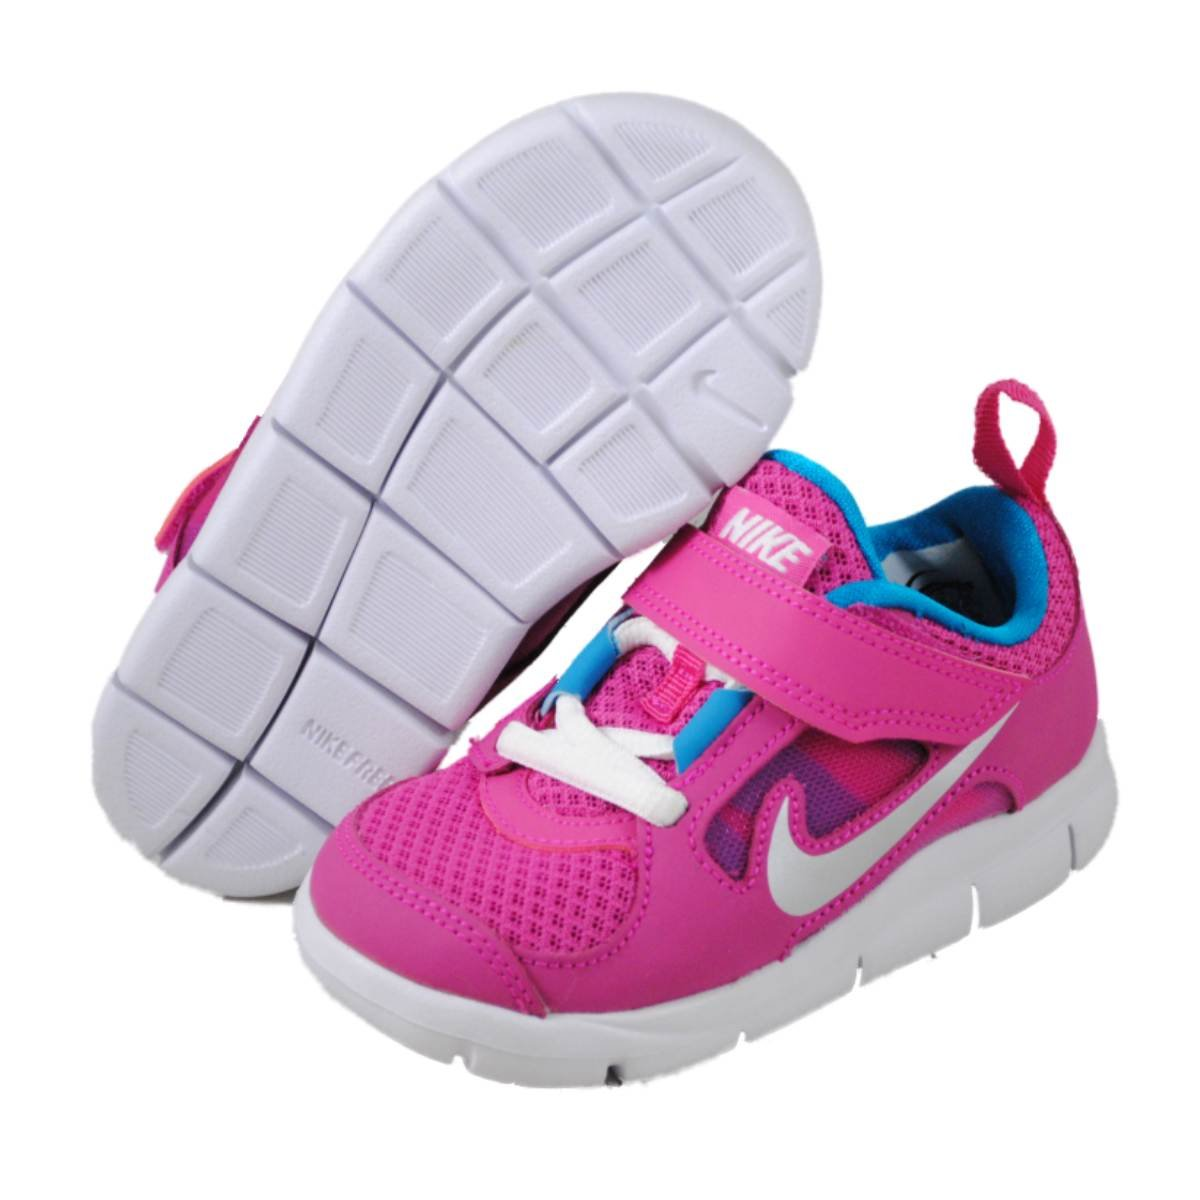 super popular 61f6c 79d76 Amazon.com  Nike Kids Free Run 3 (Tdv) Fusion Pink 512101-602 (7c, Fushion  Pink)  Shoes